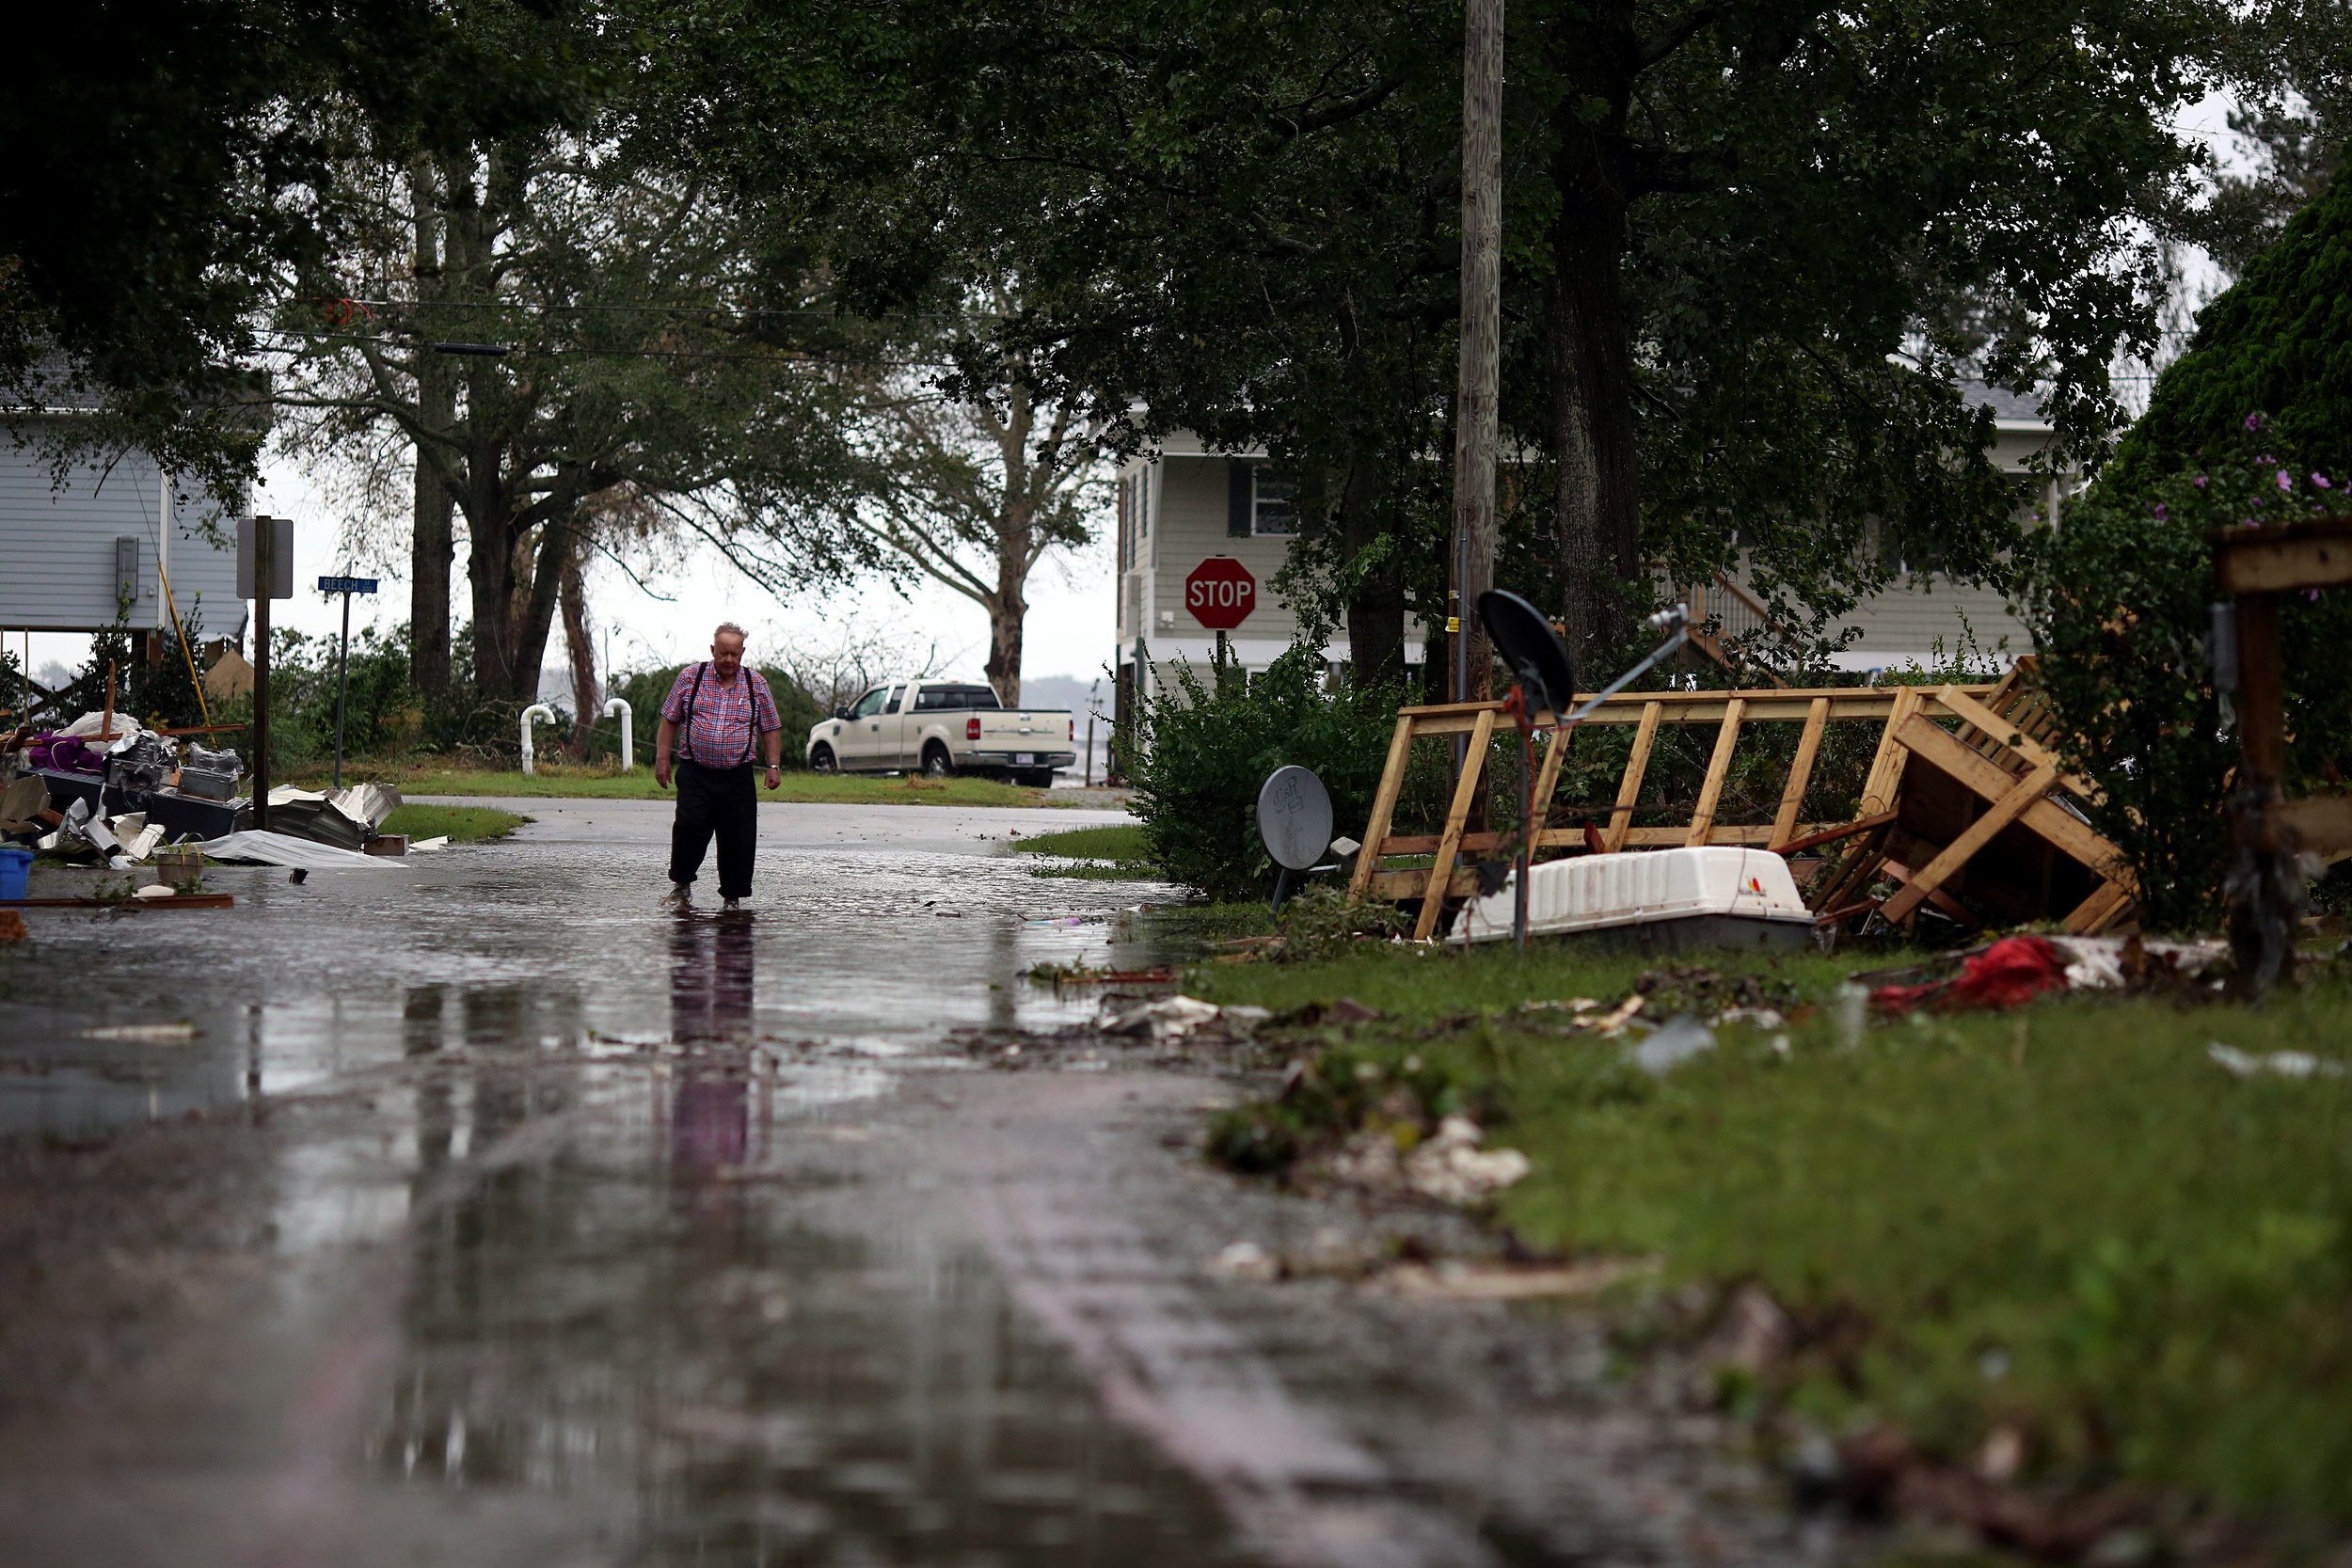 Buster Radford, 77, walks near his home, Sept. 15 in New Bern, N.C.